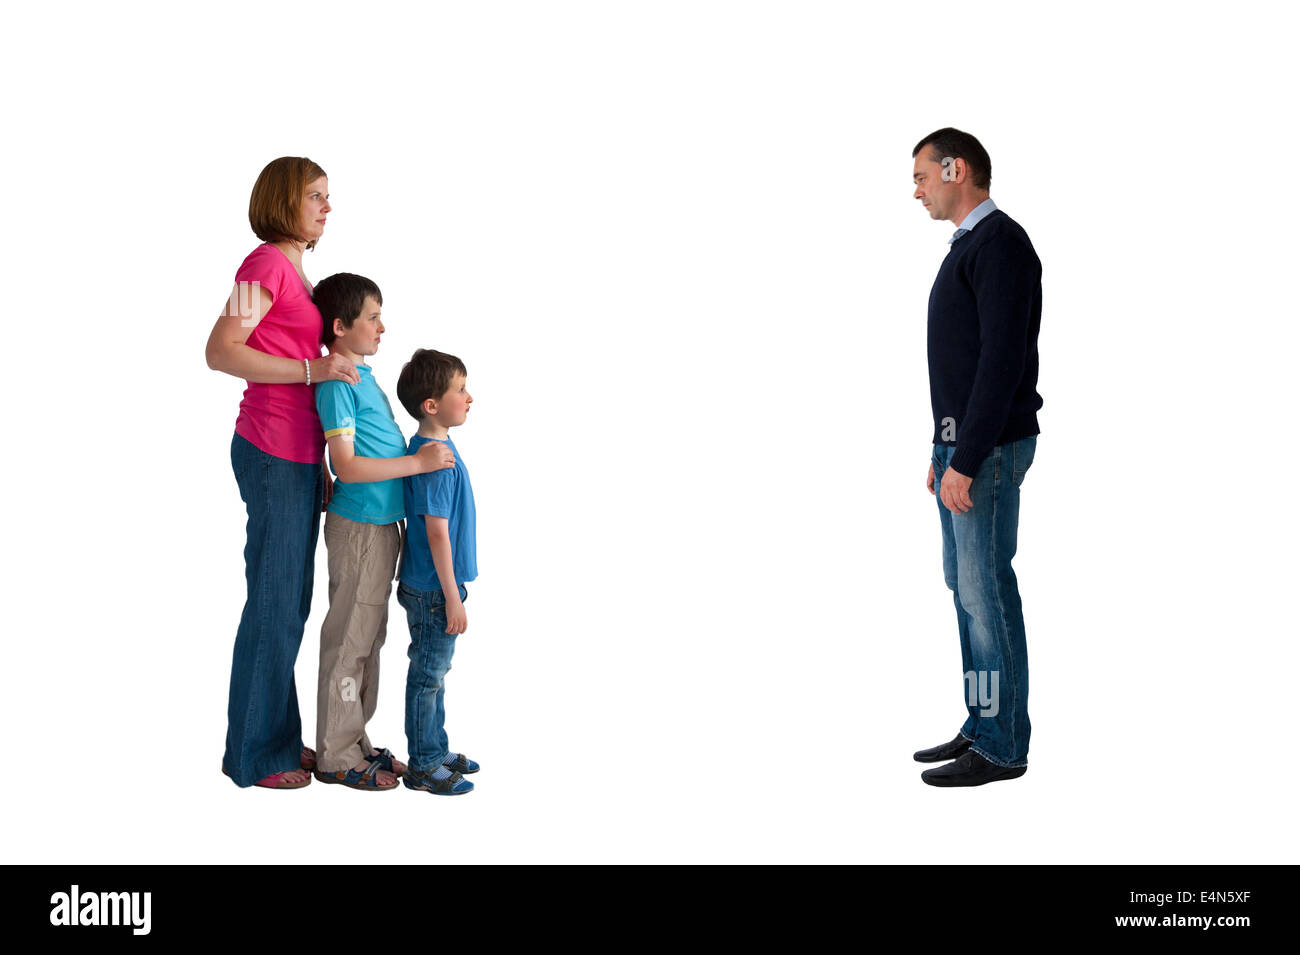 divorce concept family separation man woman and children isolated on a white background - Stock Image